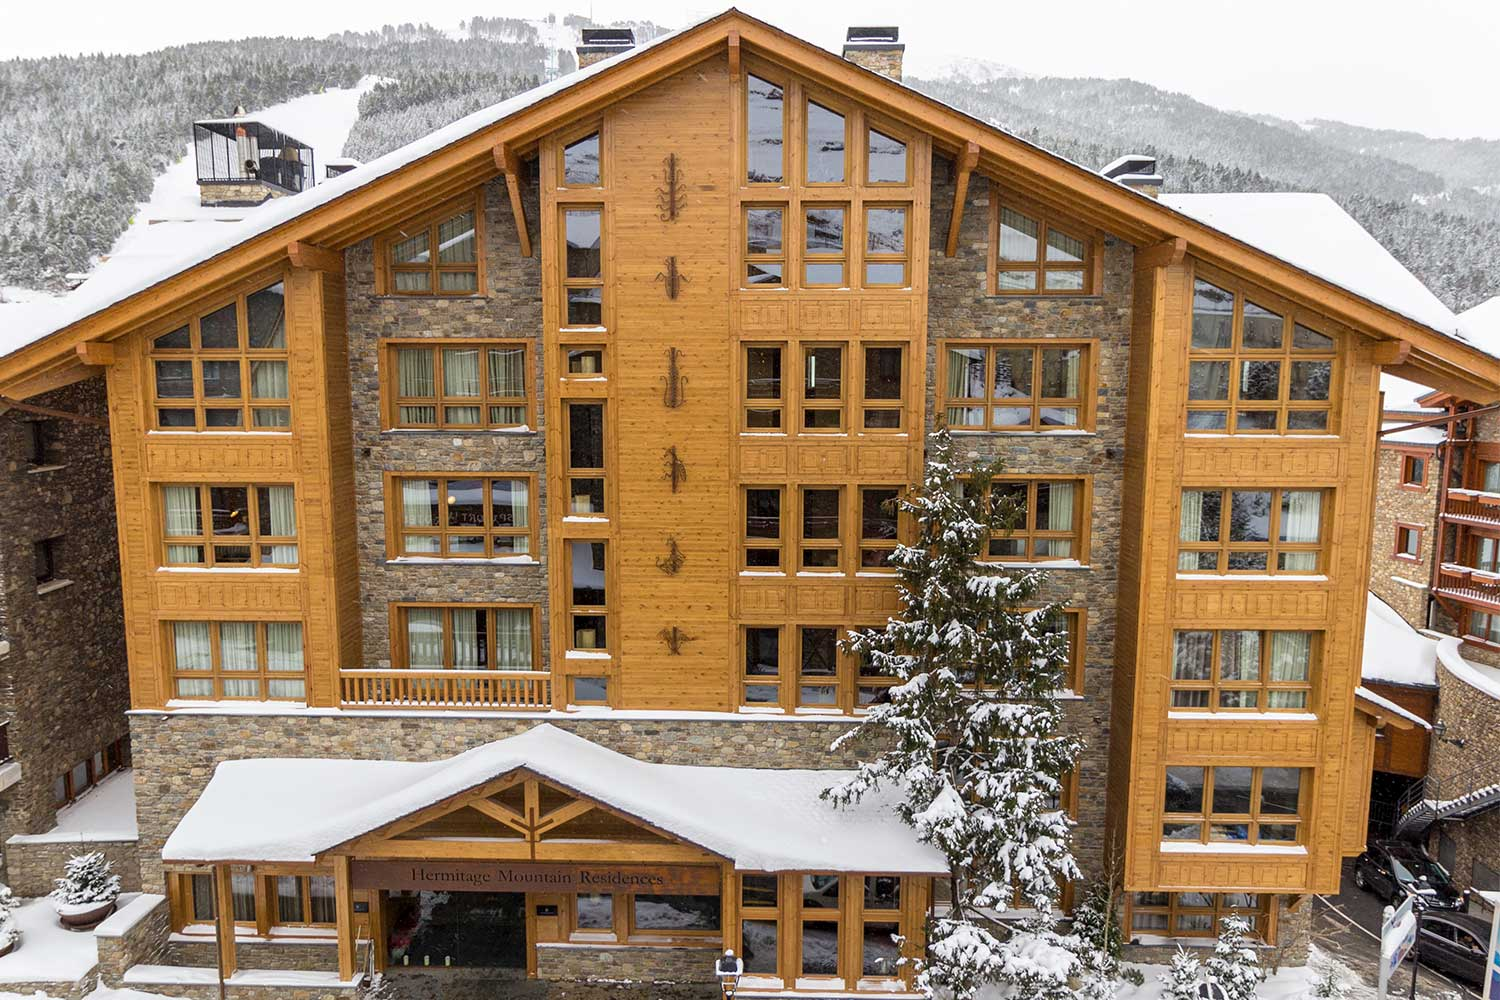 Hermitage Mountain Residences | Luxury Residences in Soldeu with Spa